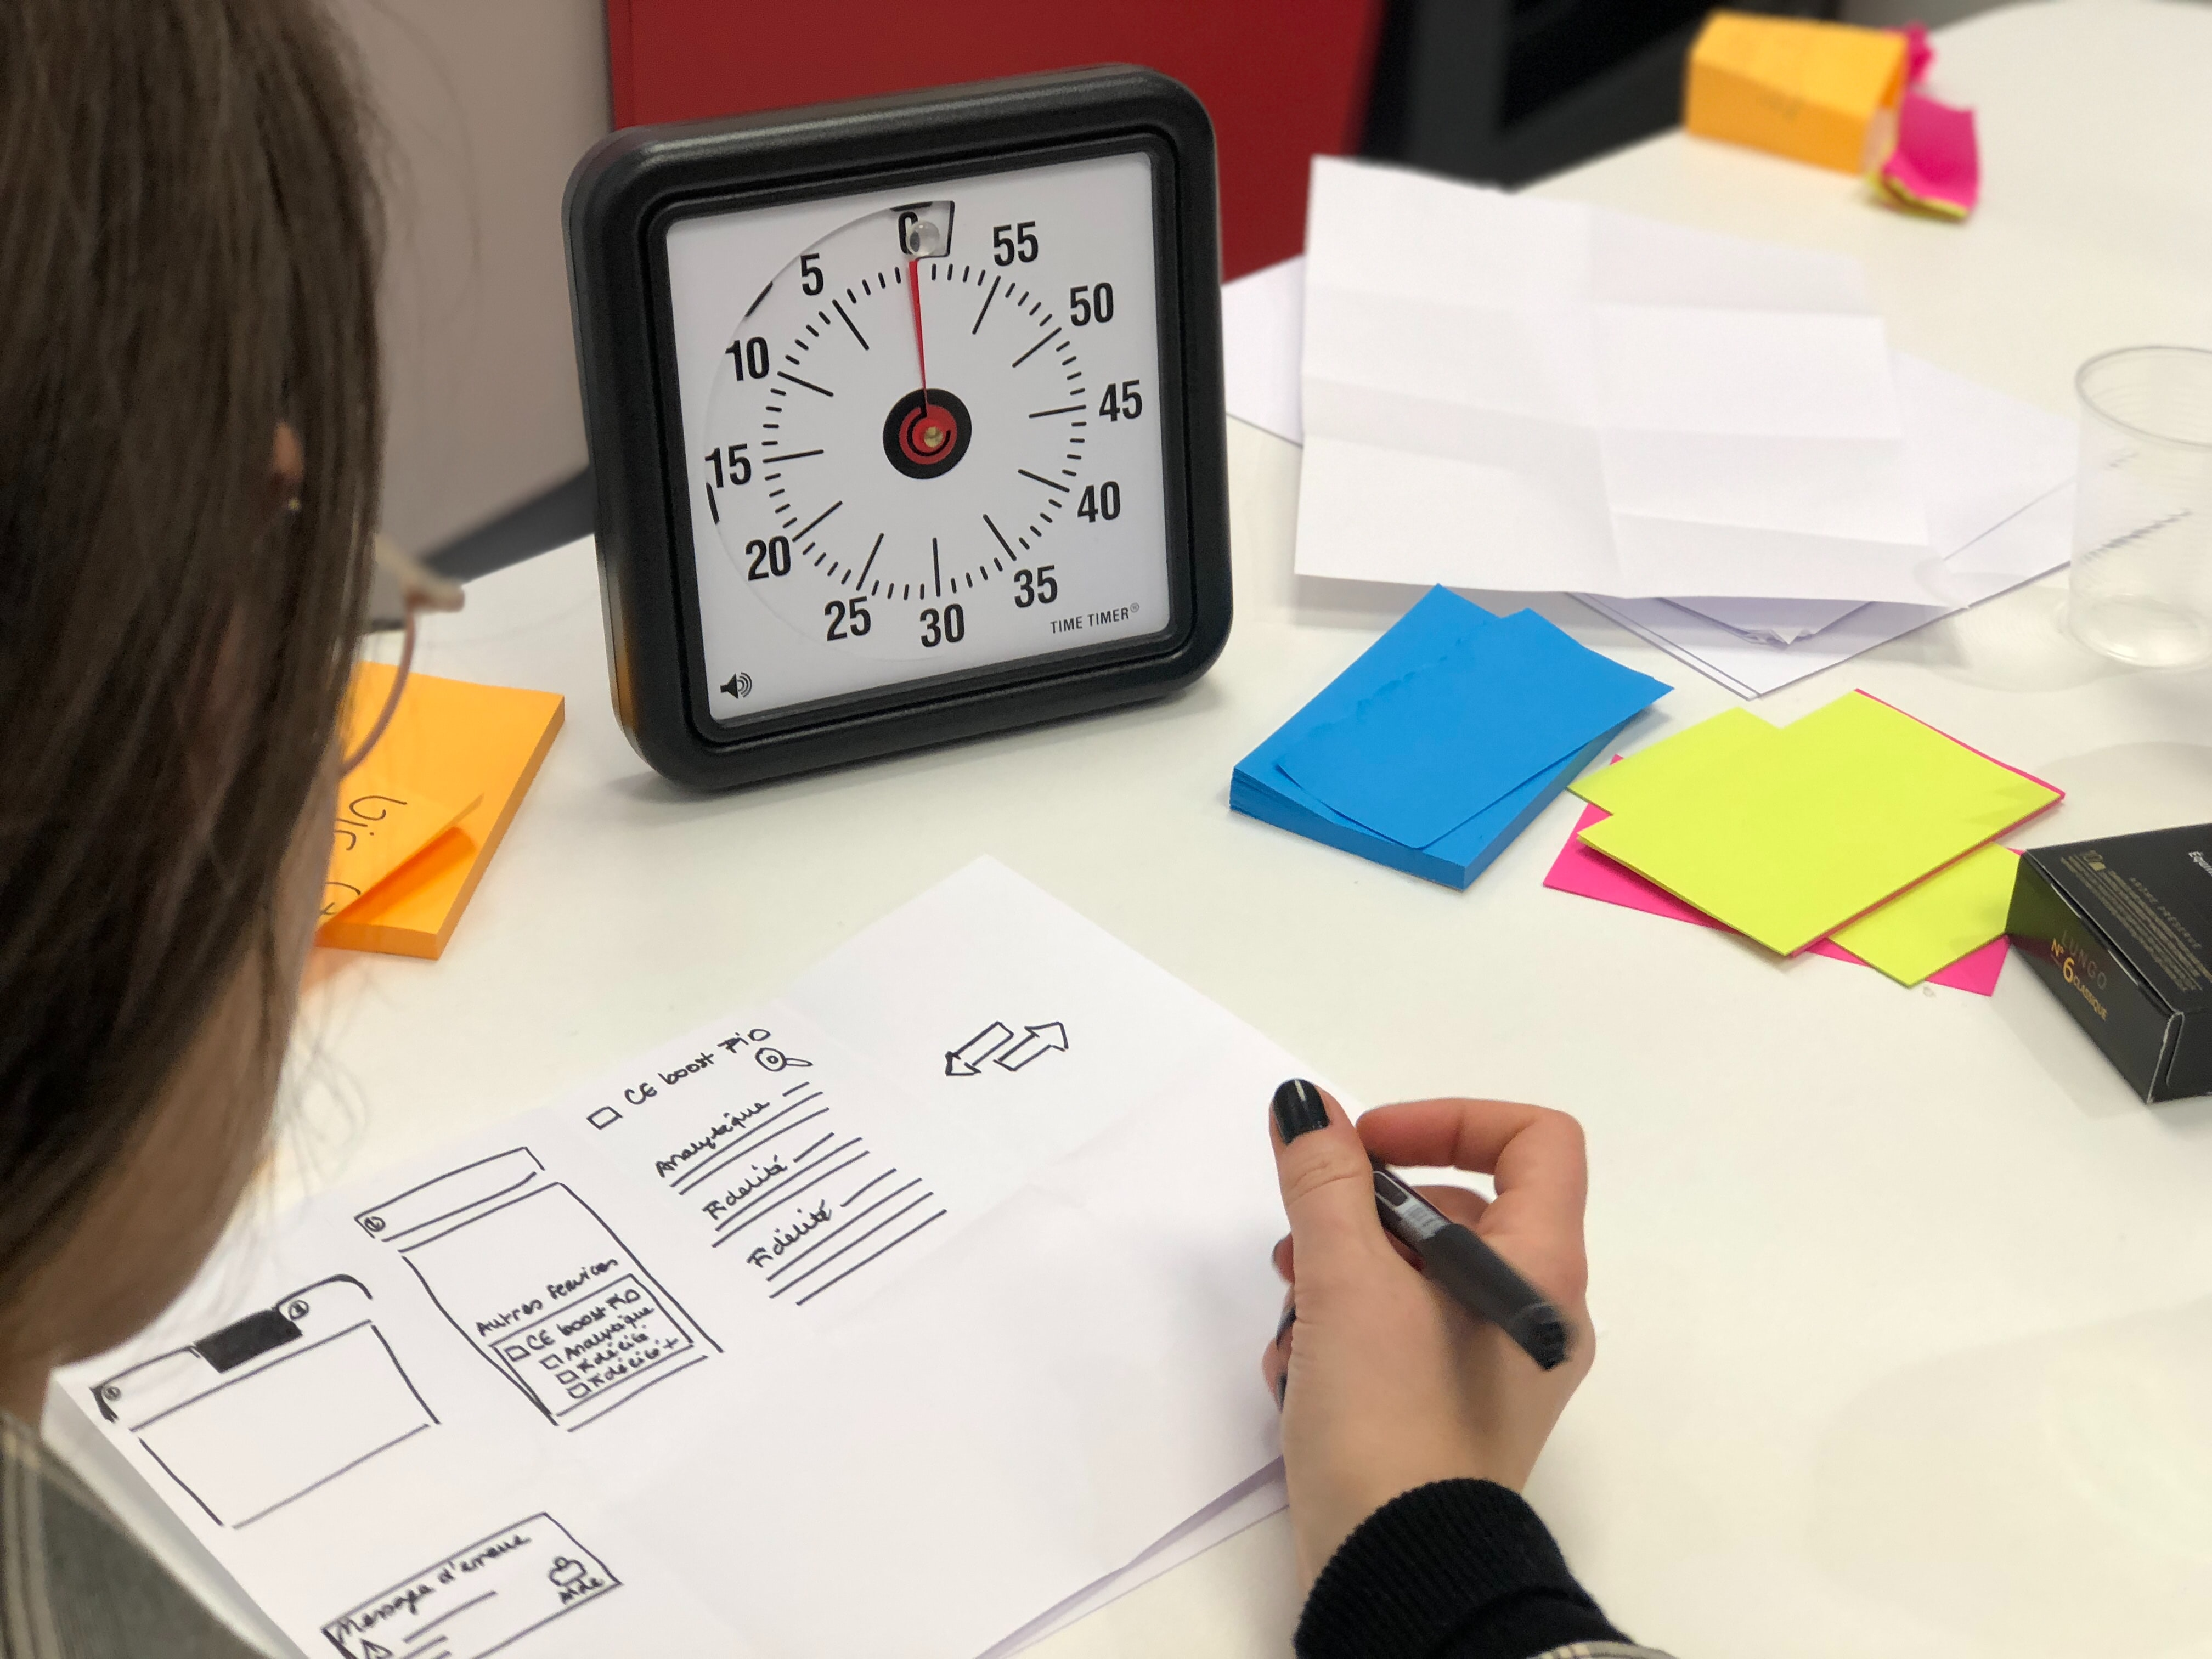 Six do's and don'ts for a successful UX ideation session